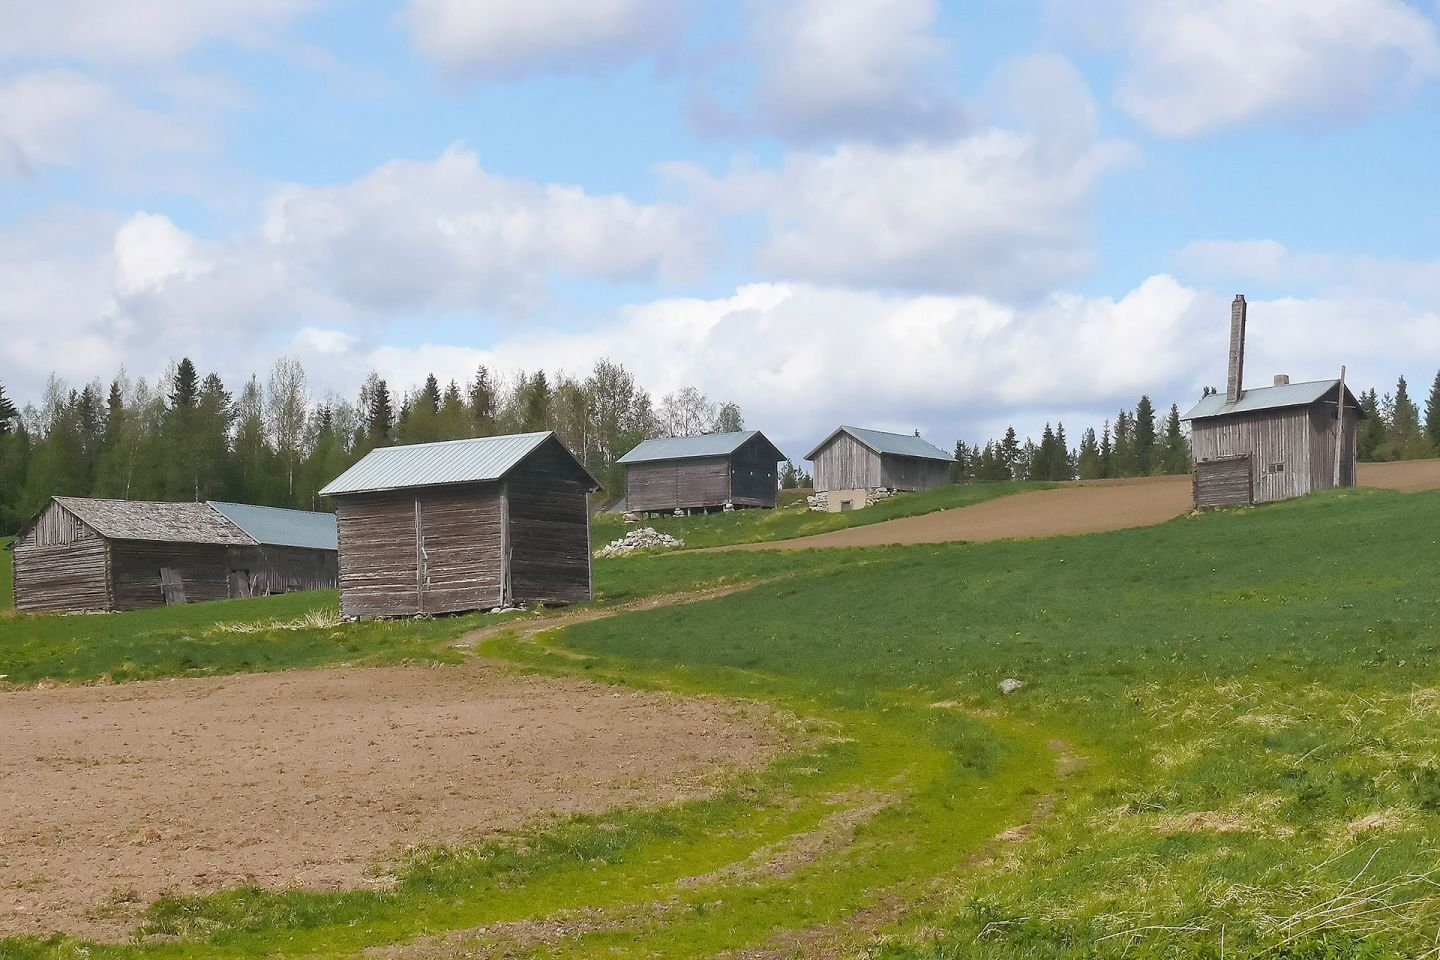 Countryside in Salla, Lapland, Finland